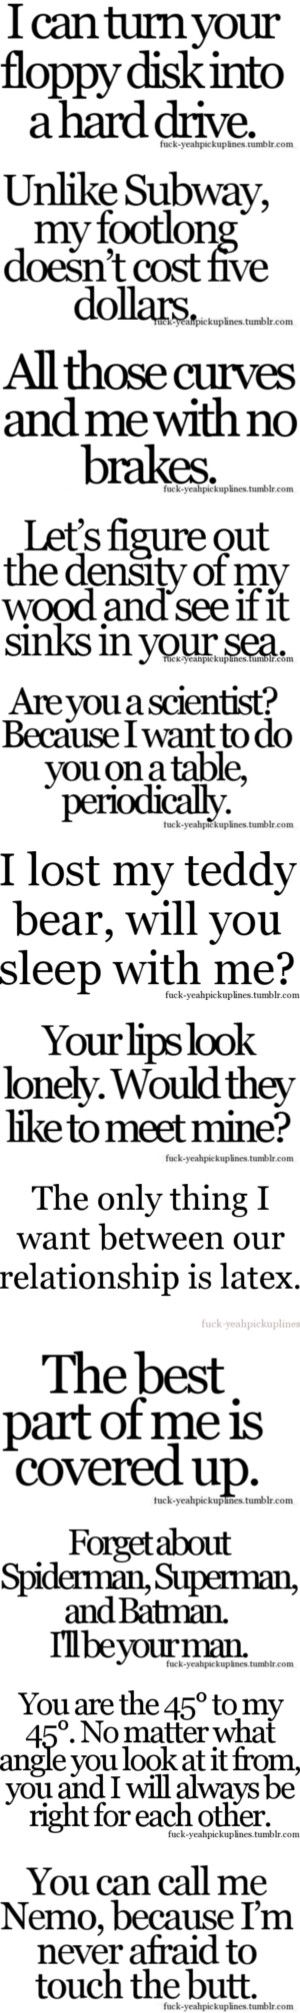 Funny and Sexual Pick-up Lines...so far. ;) by the-nerdy-hipster on Polyvore featuring fillers, words, quotes, pick up lines, pickup lines, text, phrase, saying, pick-up lines and backgrounds